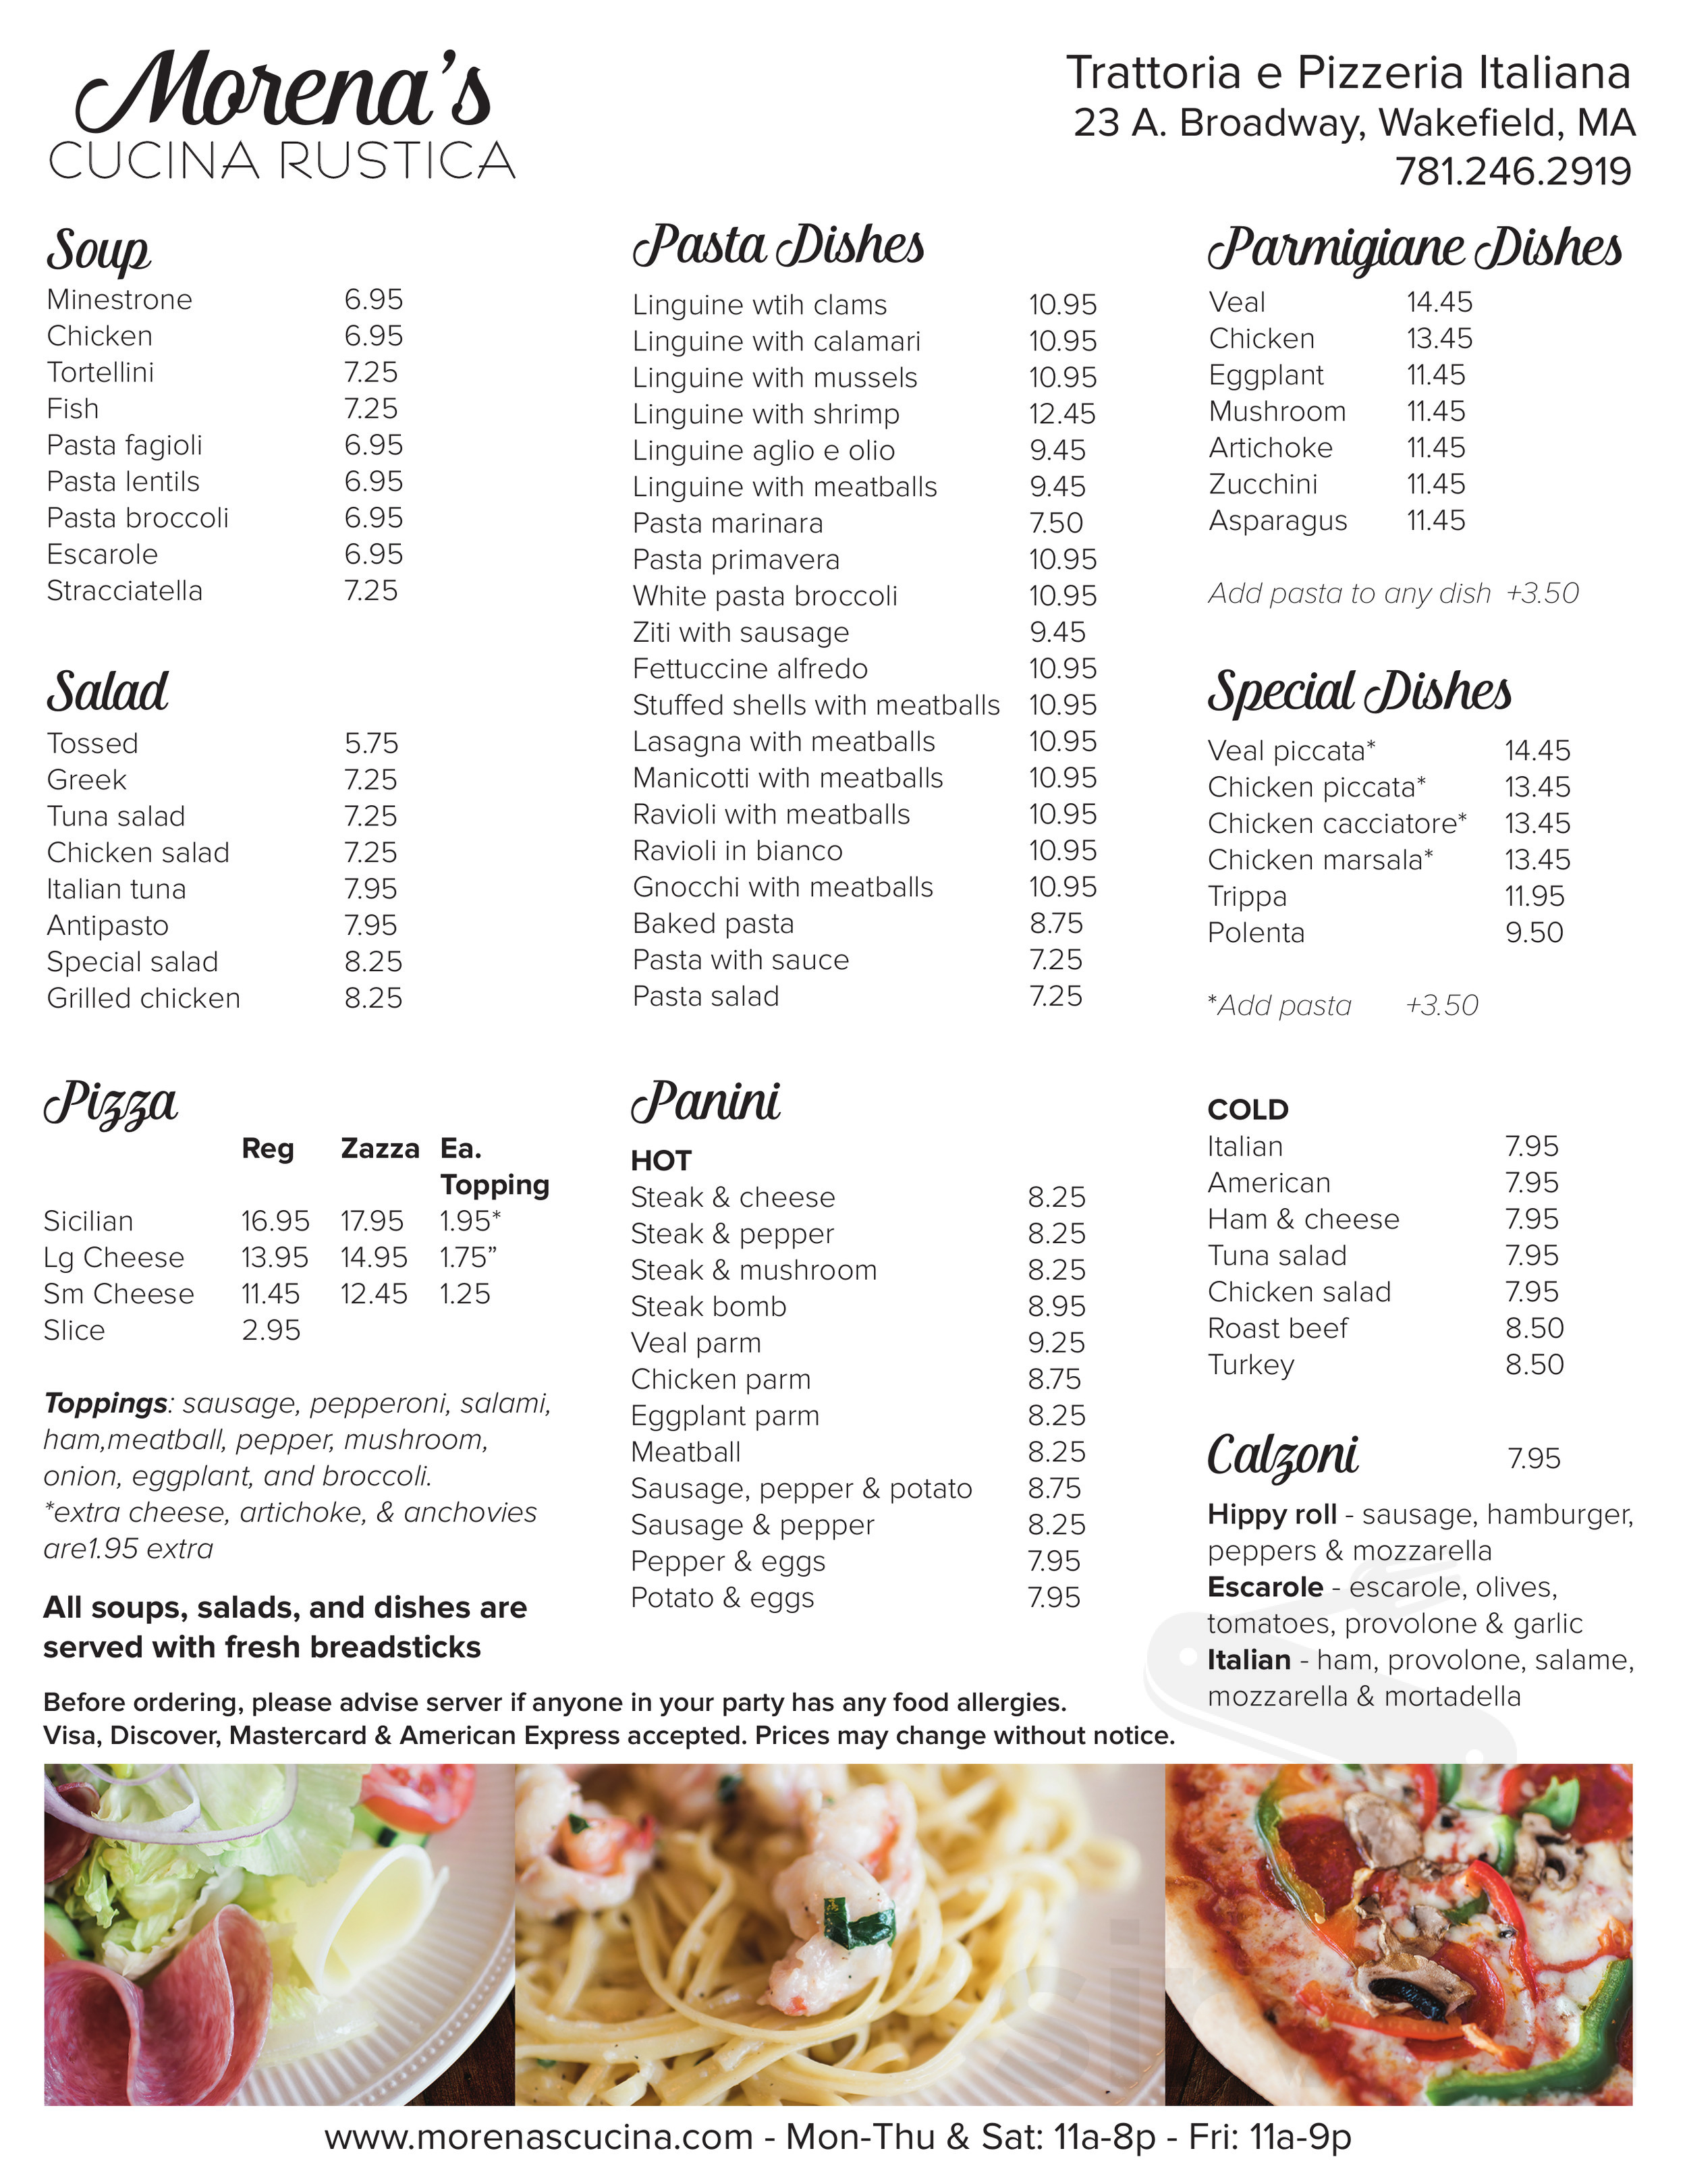 Cucina Rustica Prices Menu For Morena Cucina Rustica In Wakefield Massachusetts